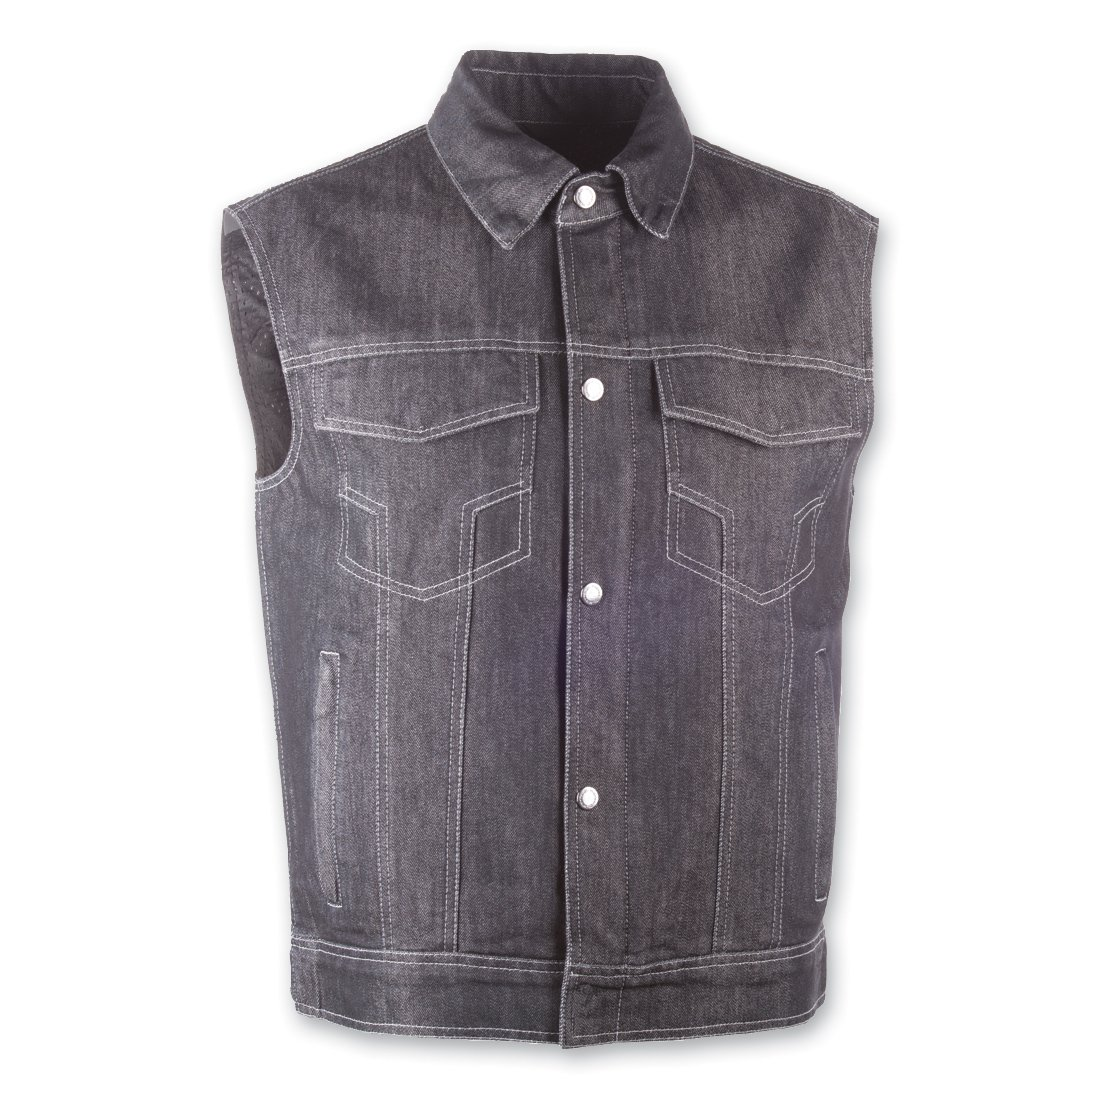 Highway 21 Unisex-Adult Iron Sights Denim Vest with Traditional Collar Blue Large 489-1075L